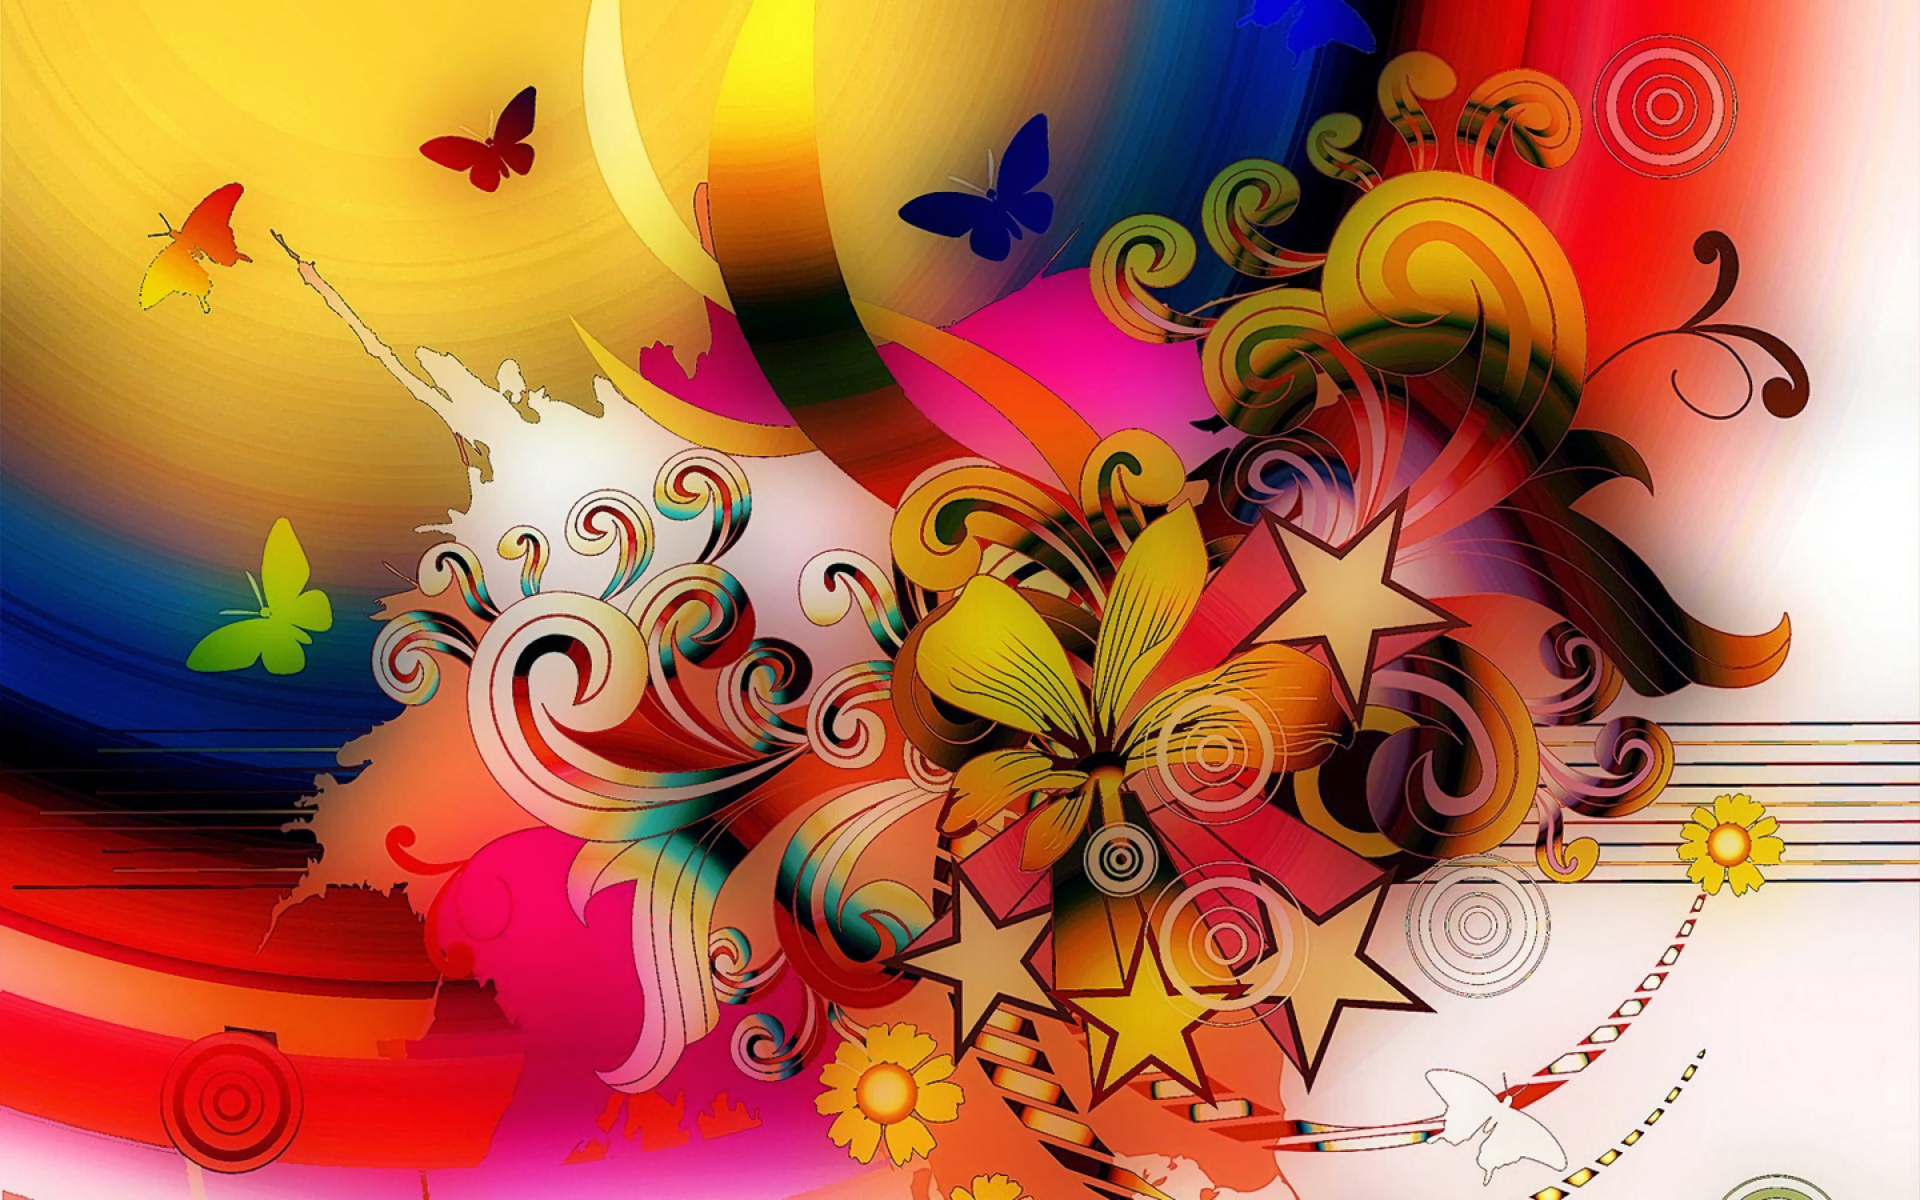 abstract wallpapers flower colorful digital arts butterflies butterfly flowers power graphics background backgrounds star colors desktop schools illustration ii cg